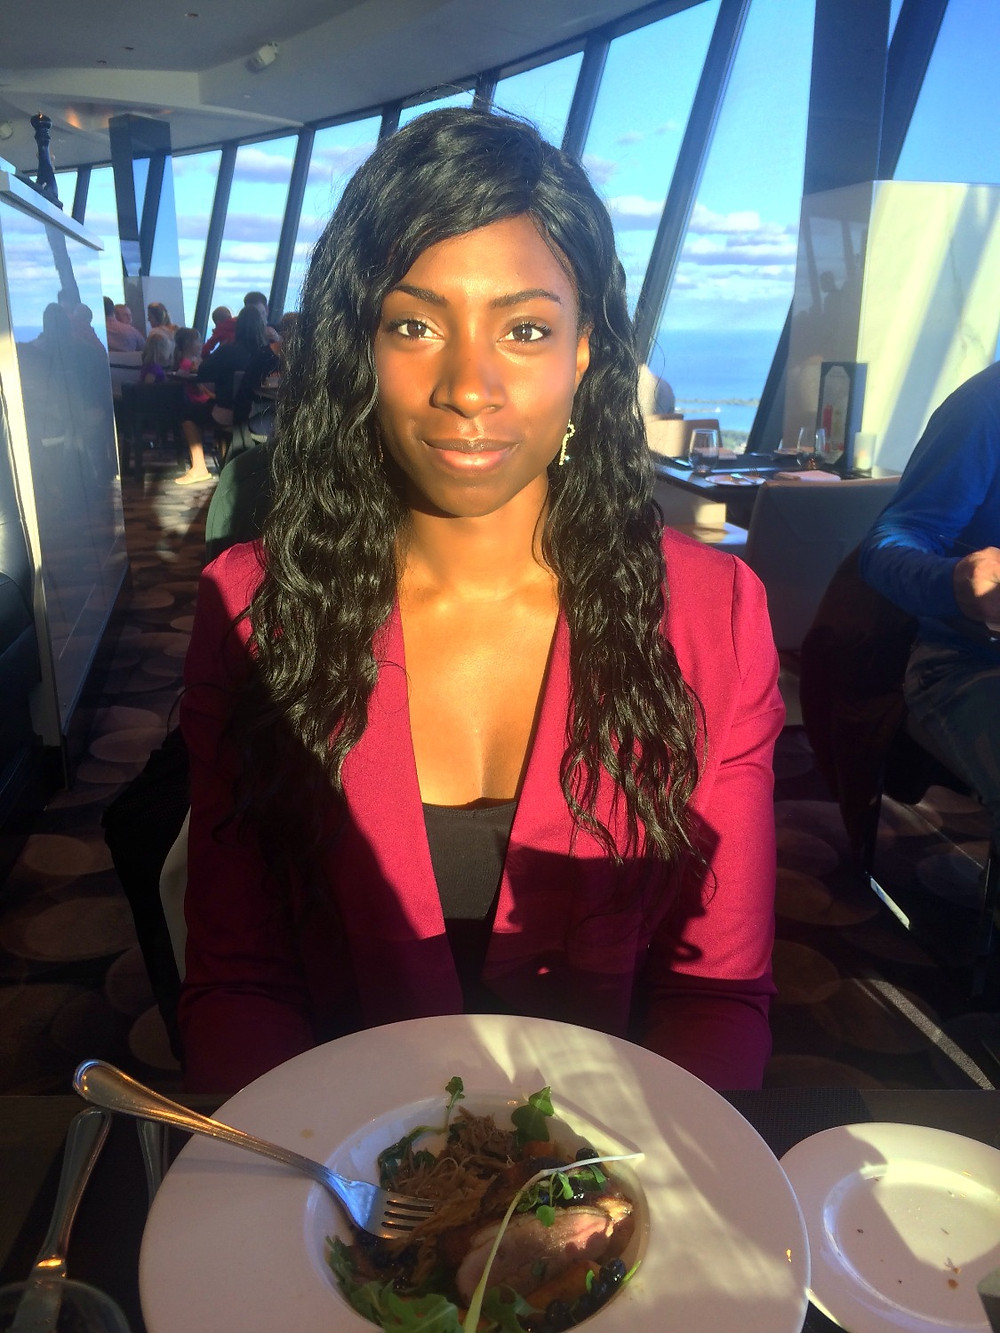 At the 360 Restaurant